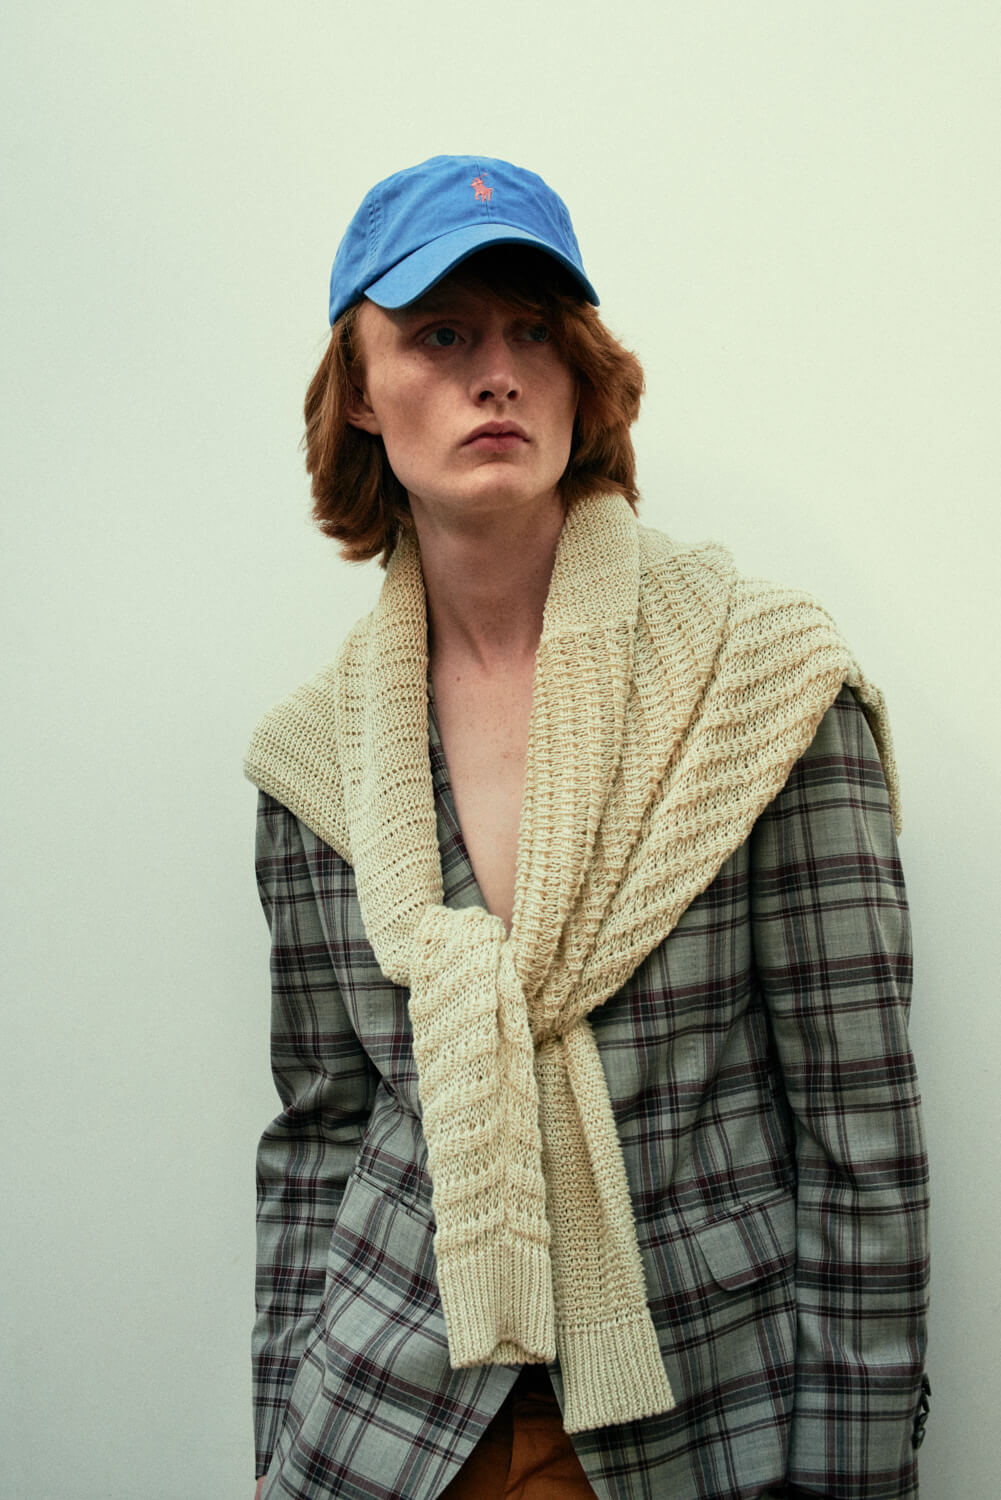 Lad checked jacket blue cap by lifestyle photographer Tim Cole